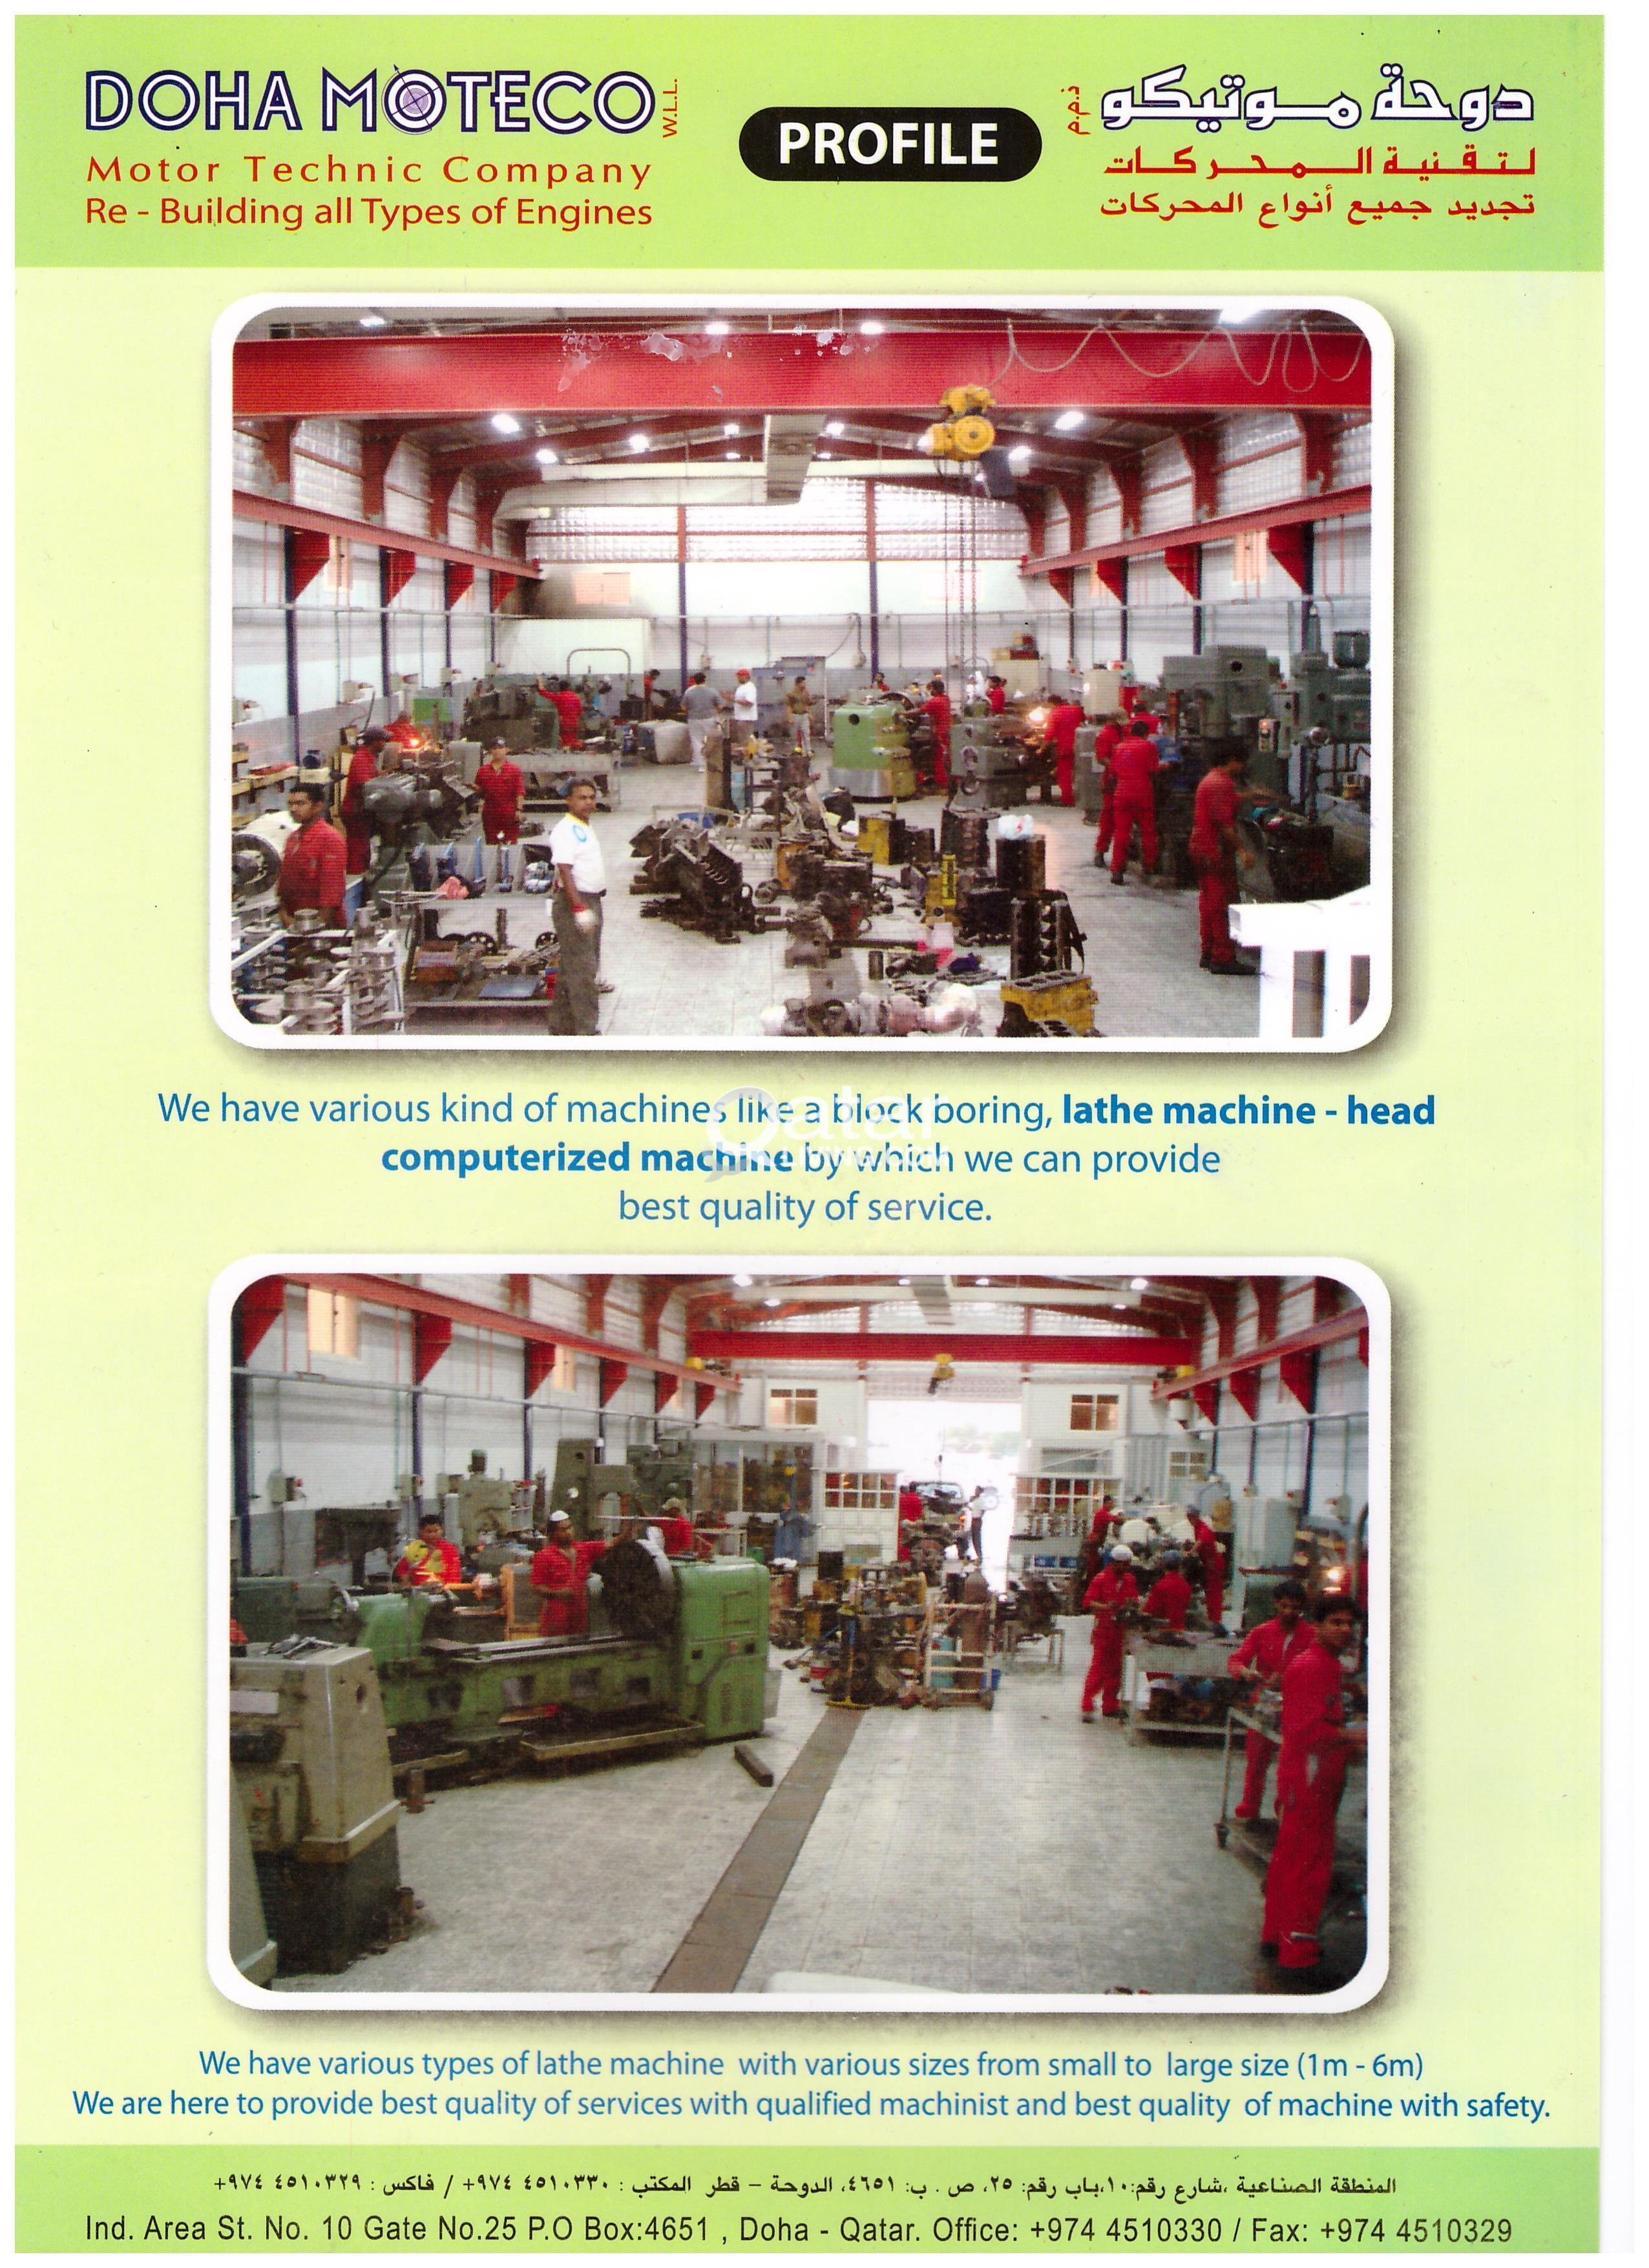 Re-build All types of Engines,miscellaneous lathe,Grinding